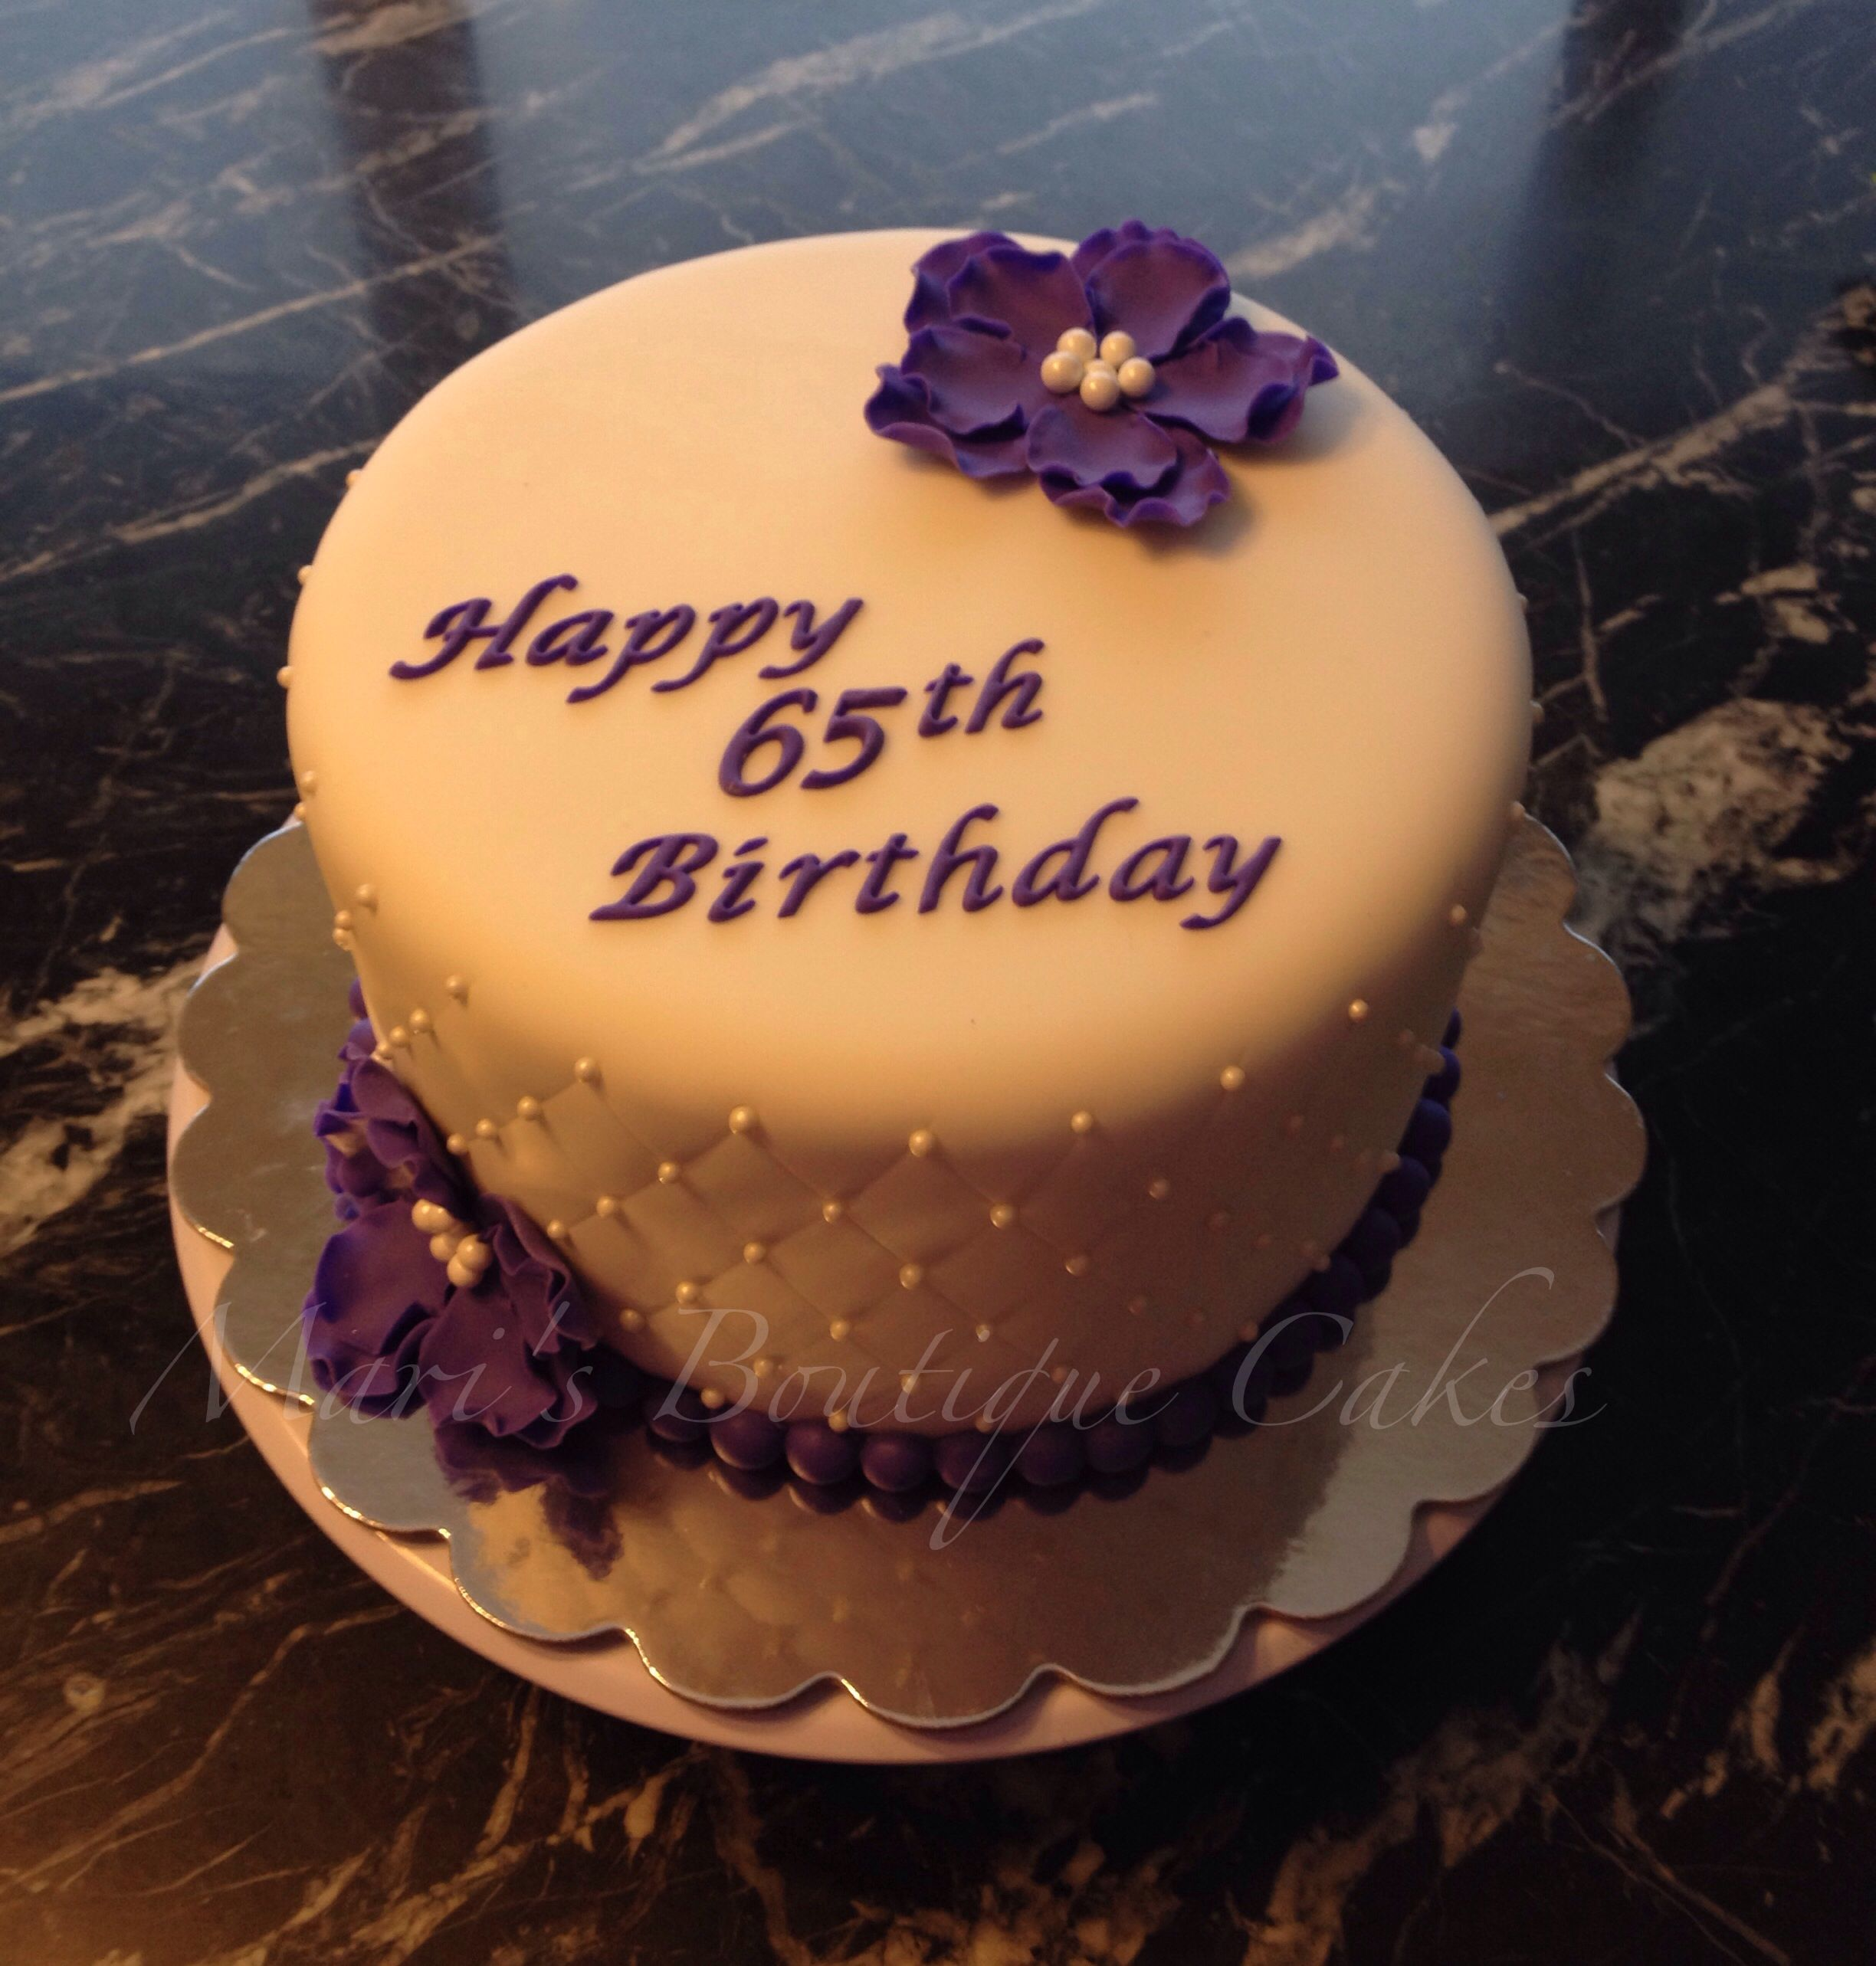 Download 65th birthday card turning 65 happy 65th birthday friend - 65th Birthday Cake With Purple Flowers By Mari S Boutique Cakes